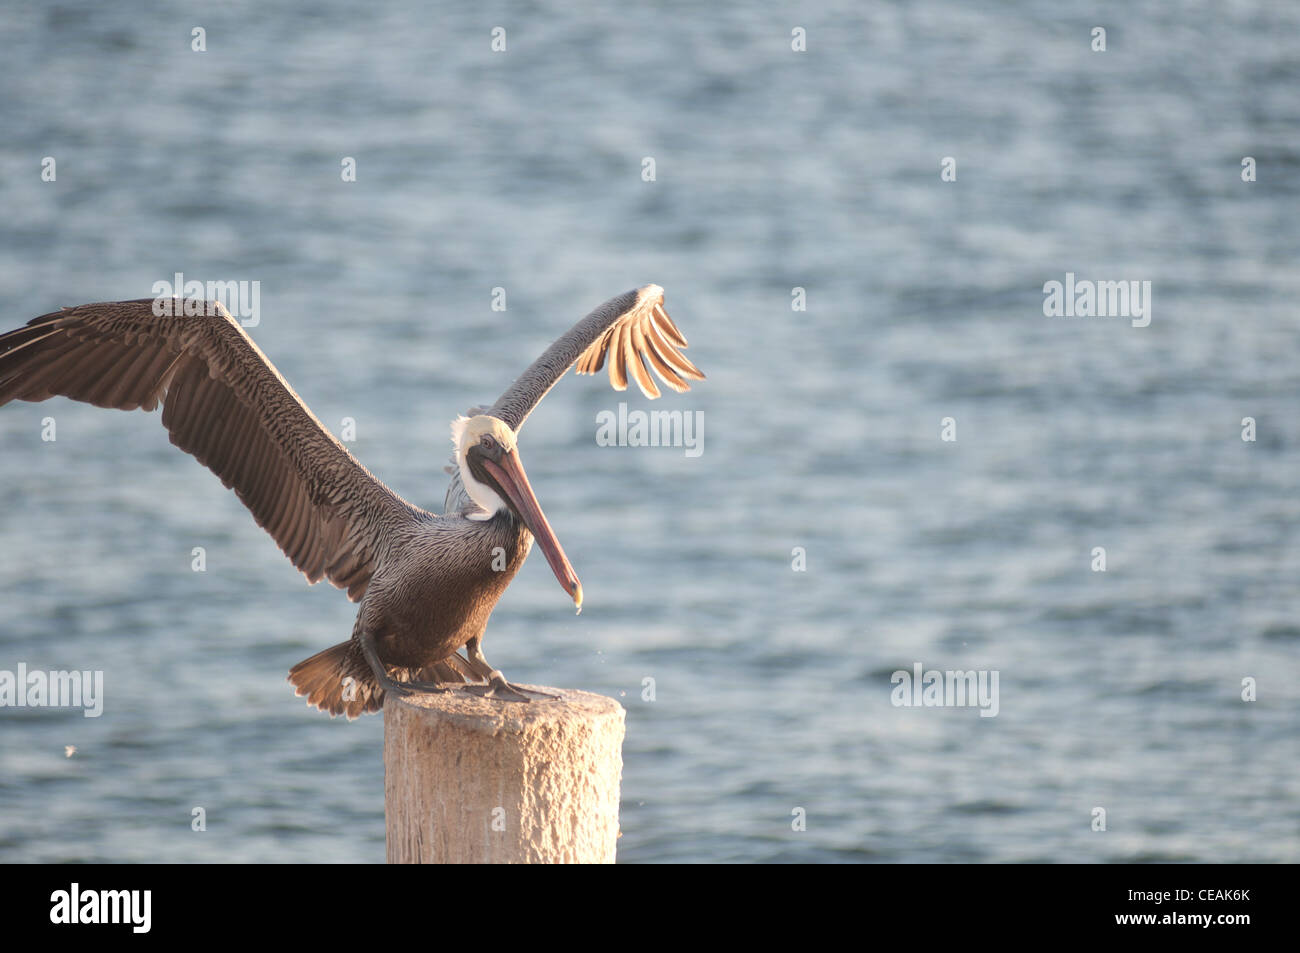 Brown Pelican, Pelecanus occidentalis, standing pole of Pier One, St Petersburg, Gulf of Mexico, Florida, North - Stock Image